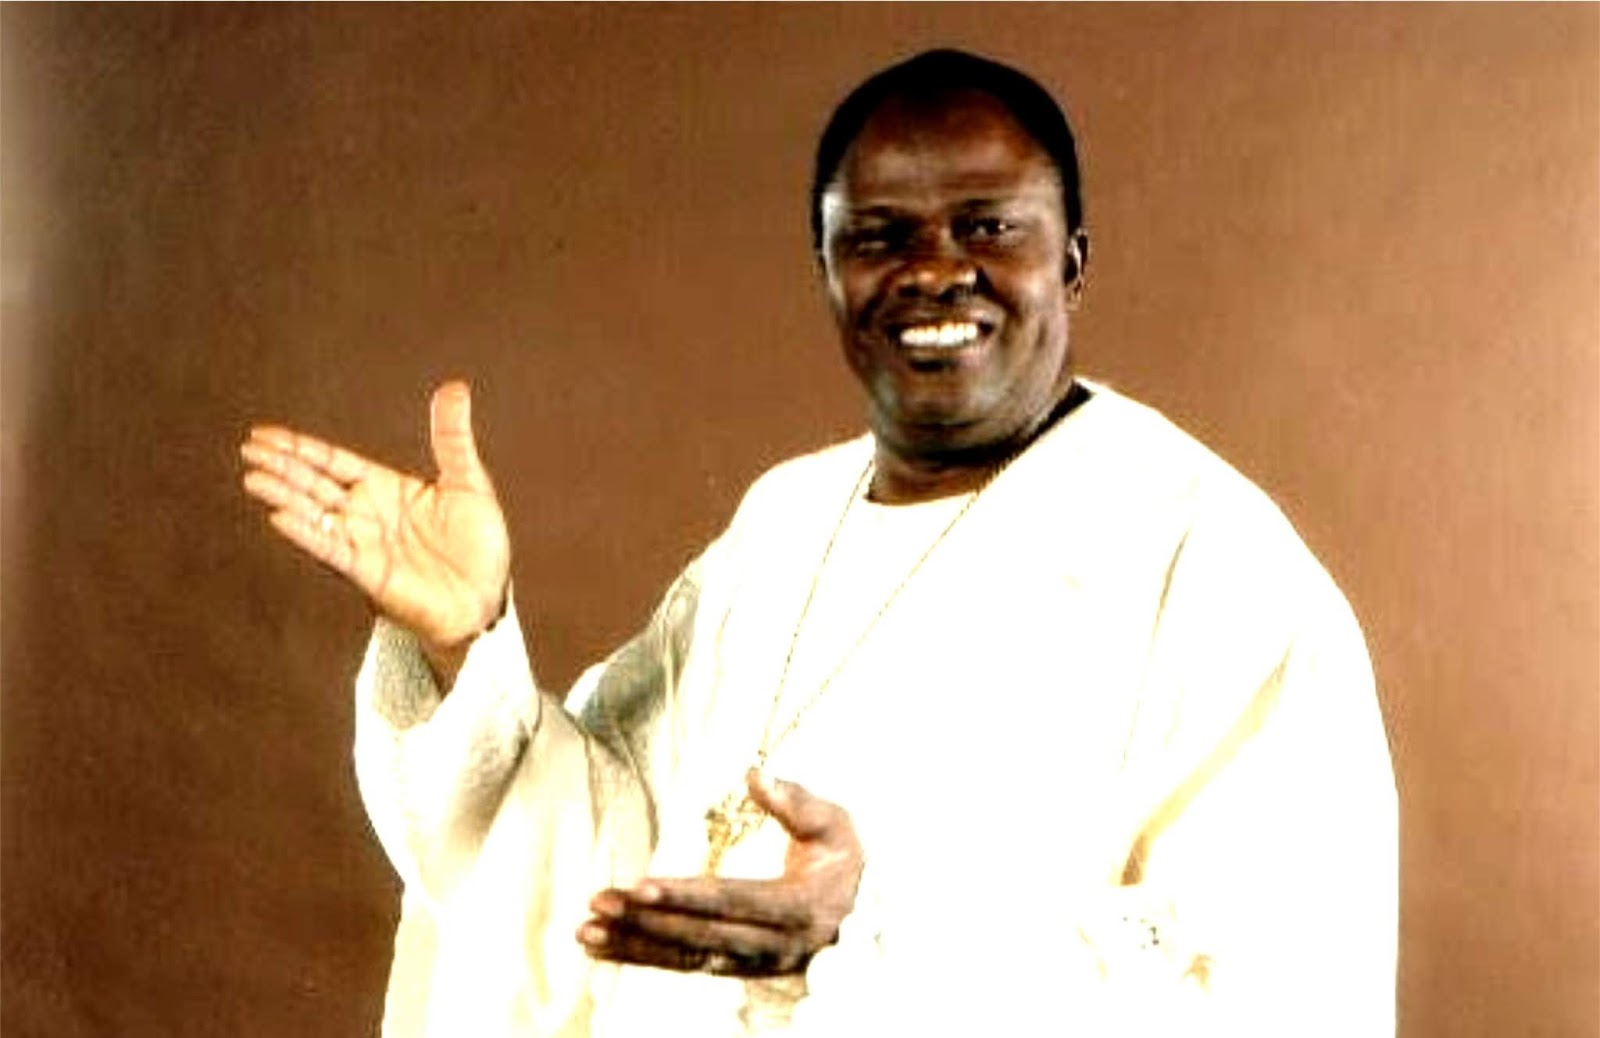 The Death Of Archbishop Benson Andrew Idahosa - How, When, Where And What?